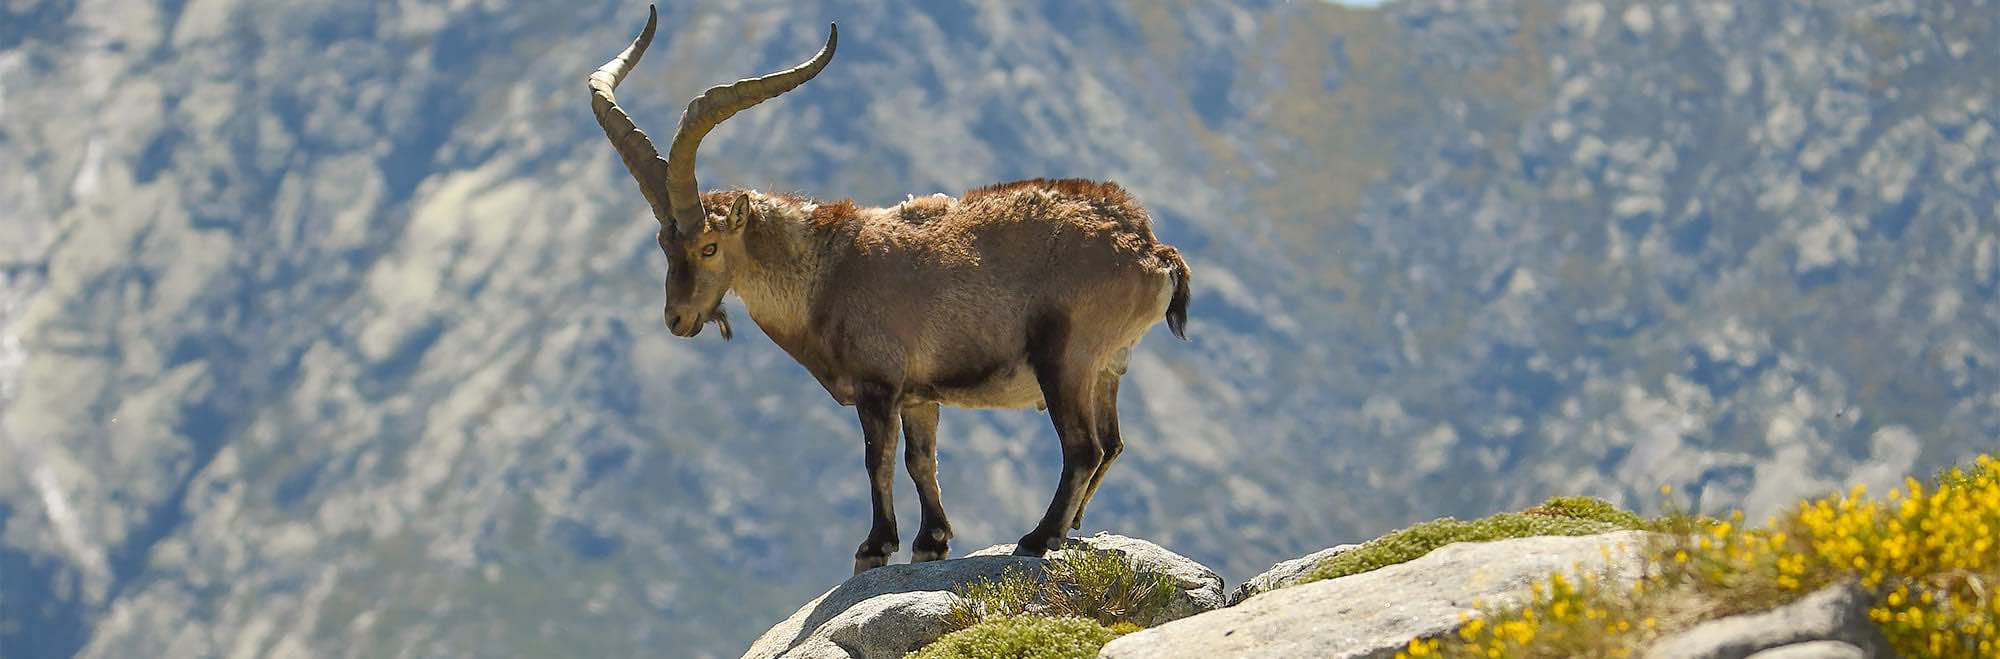 Ibex Capra hunting in Spain for Gredos, western, Beceite, Southeastern & Ronda Macho Montes in Sierr